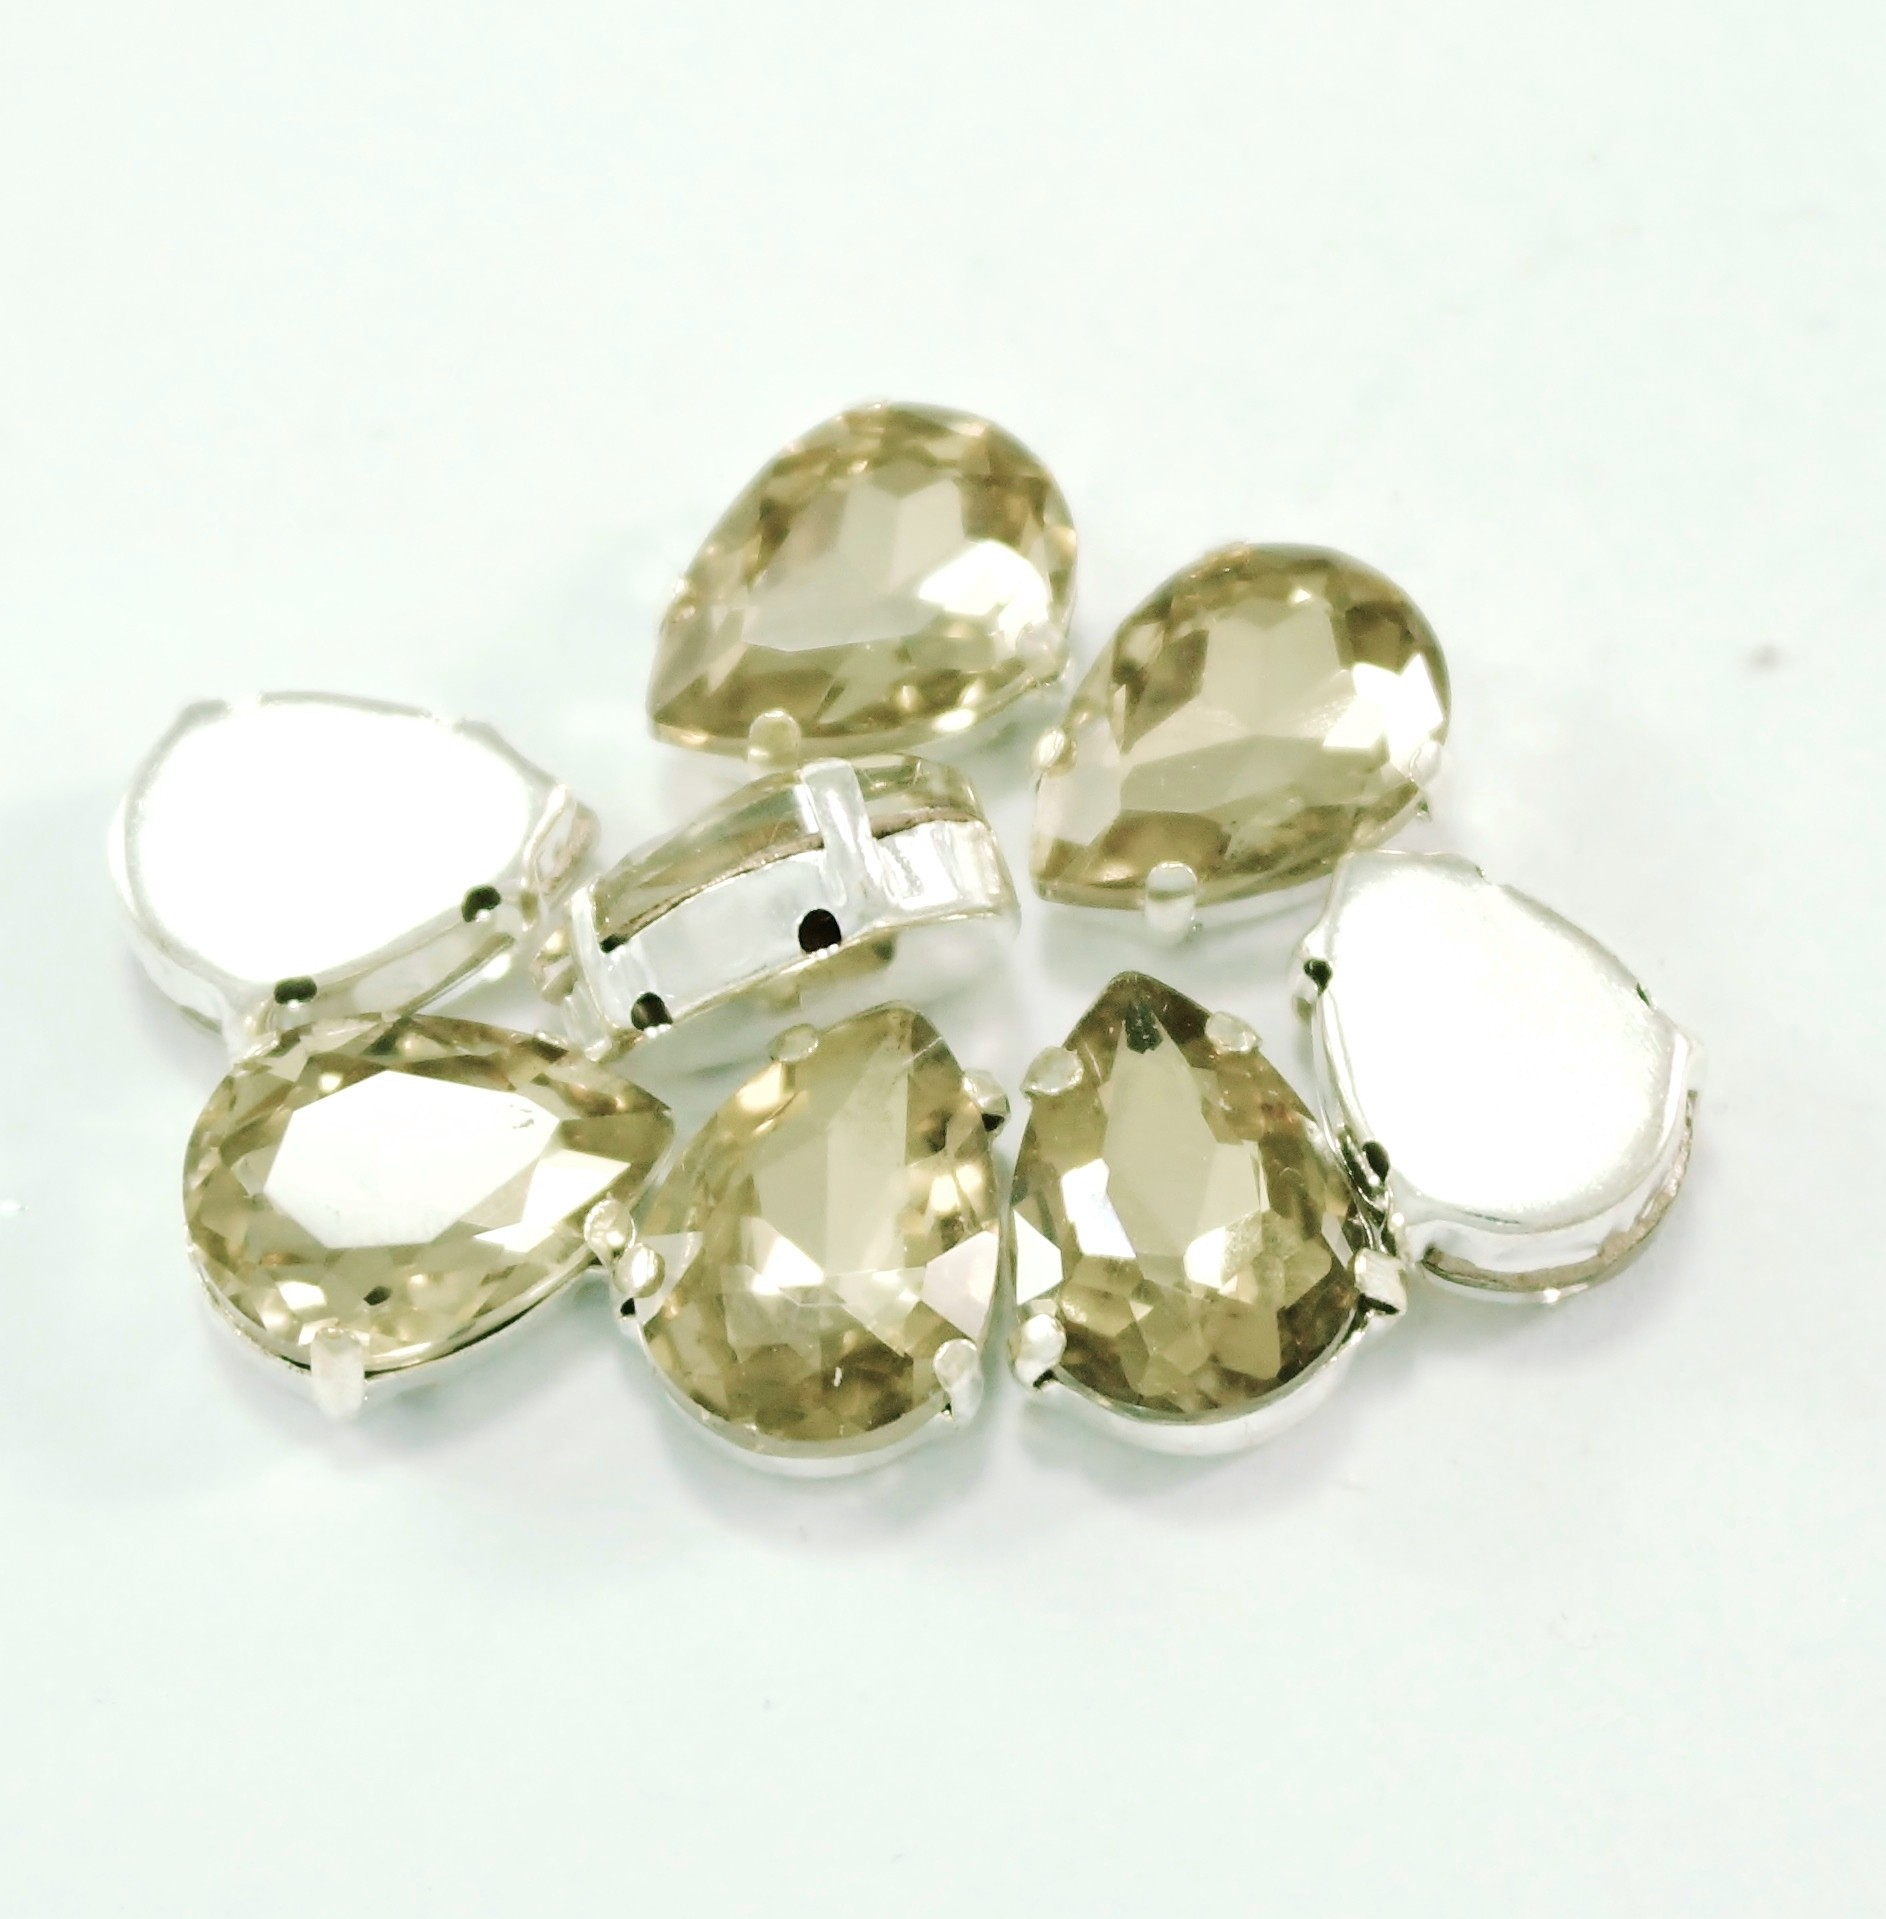 GLASS BEADS - LT. COLORADO TOPAZ TEAR DROP (T10)